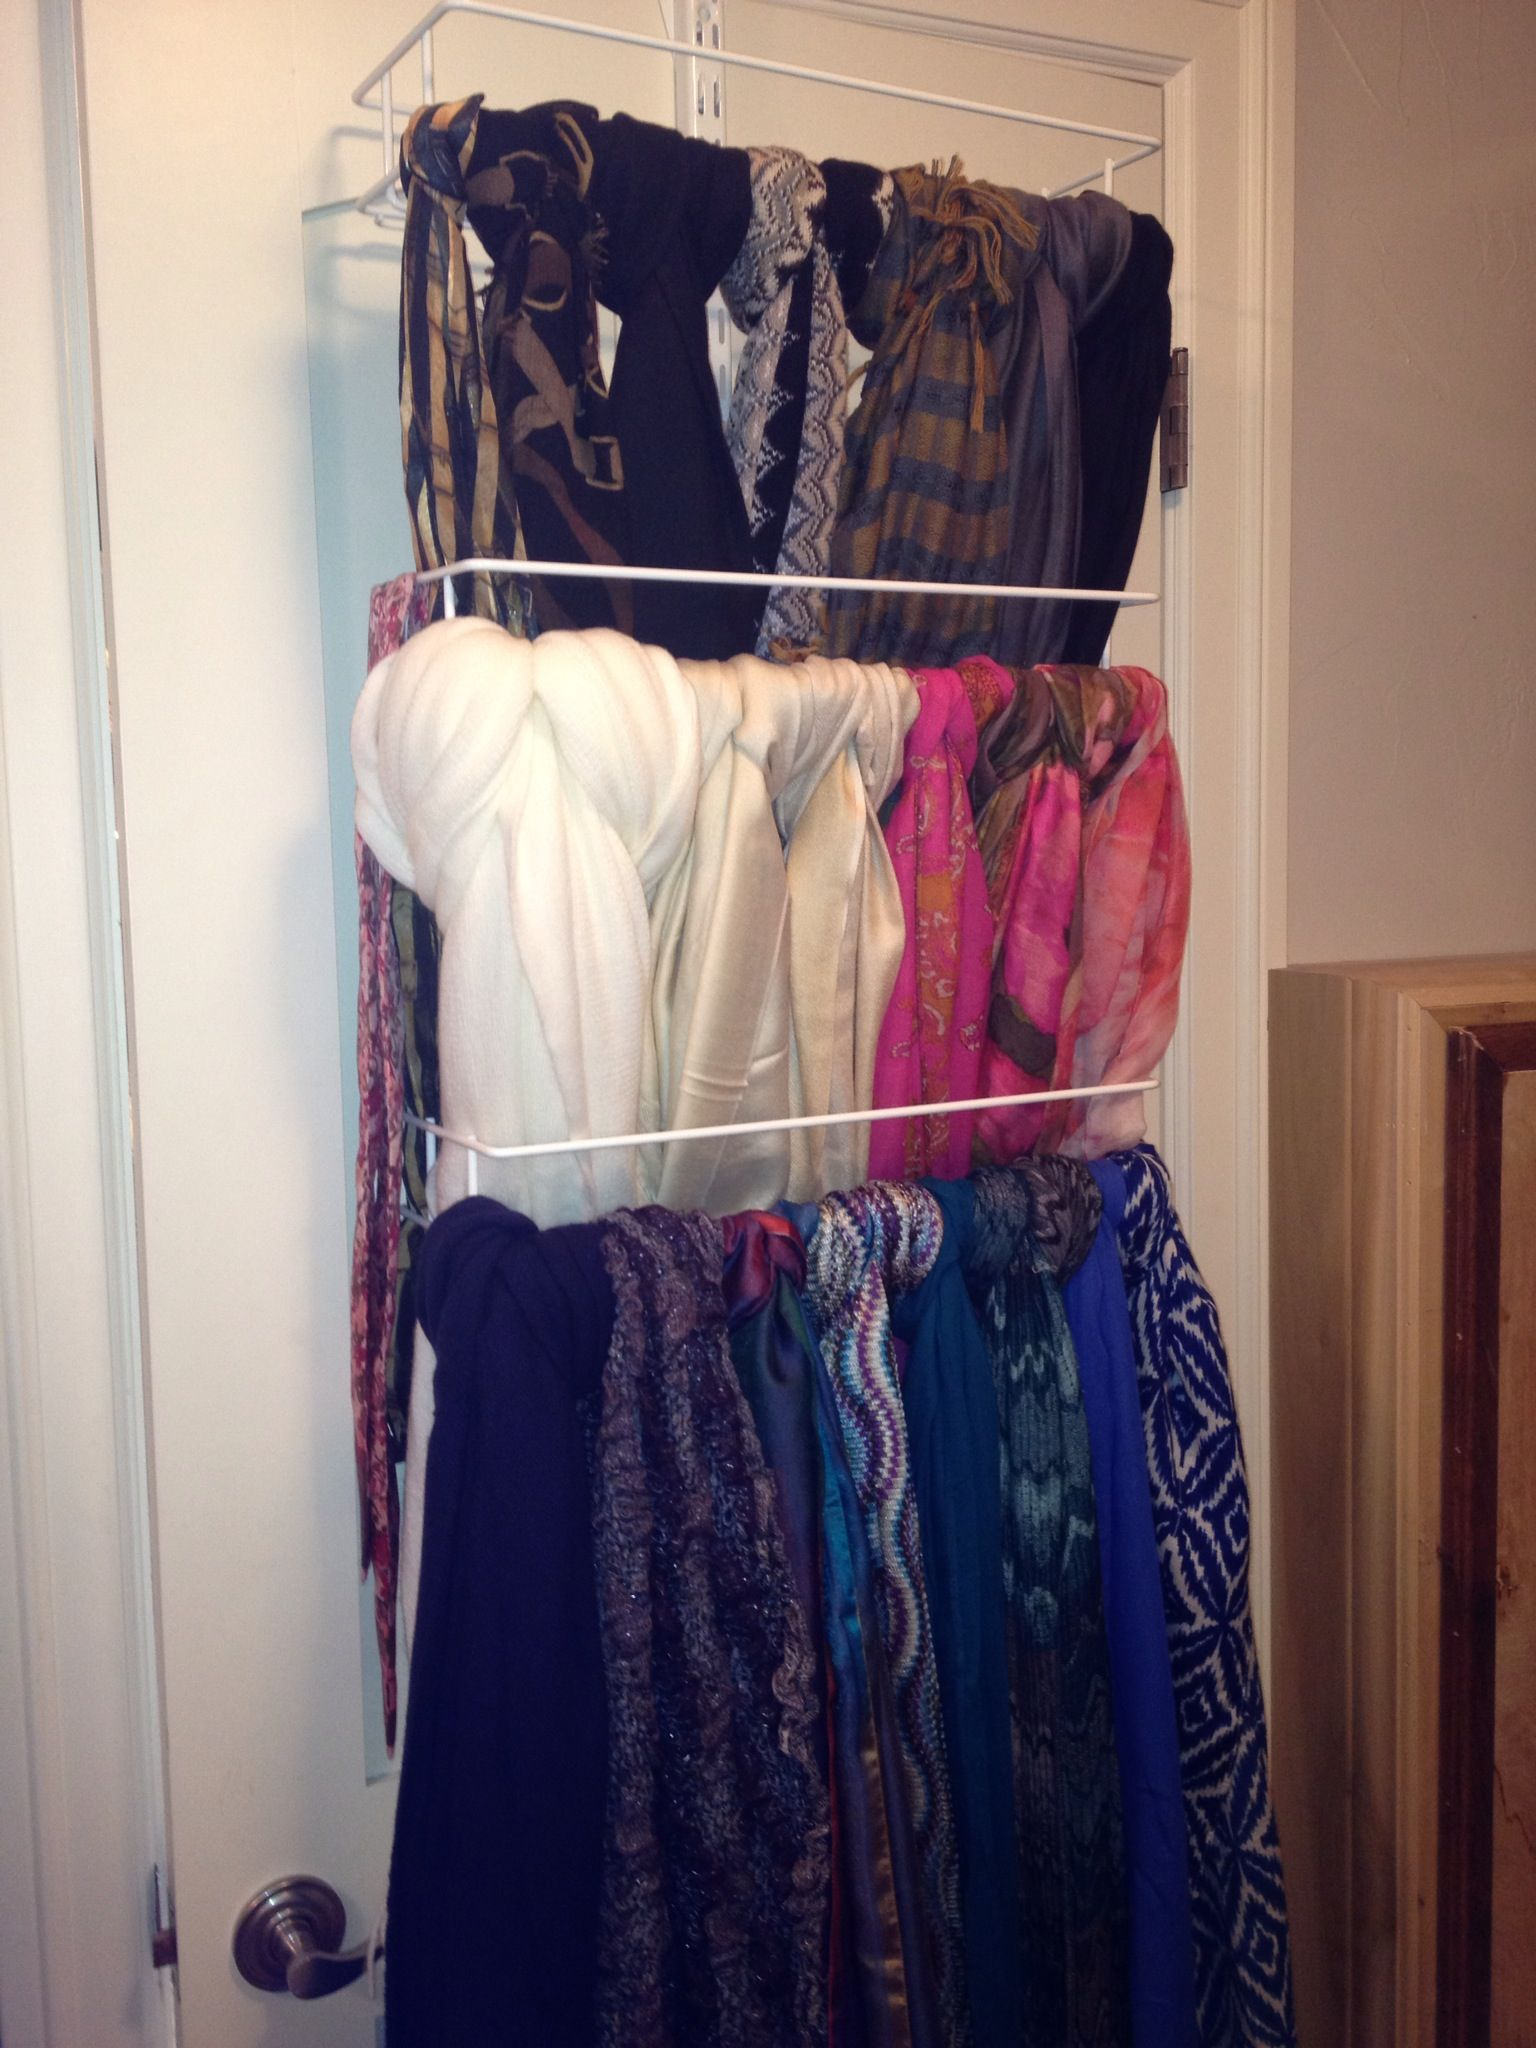 Scarf Storage Used The Elfa Door Rack And Media Racks